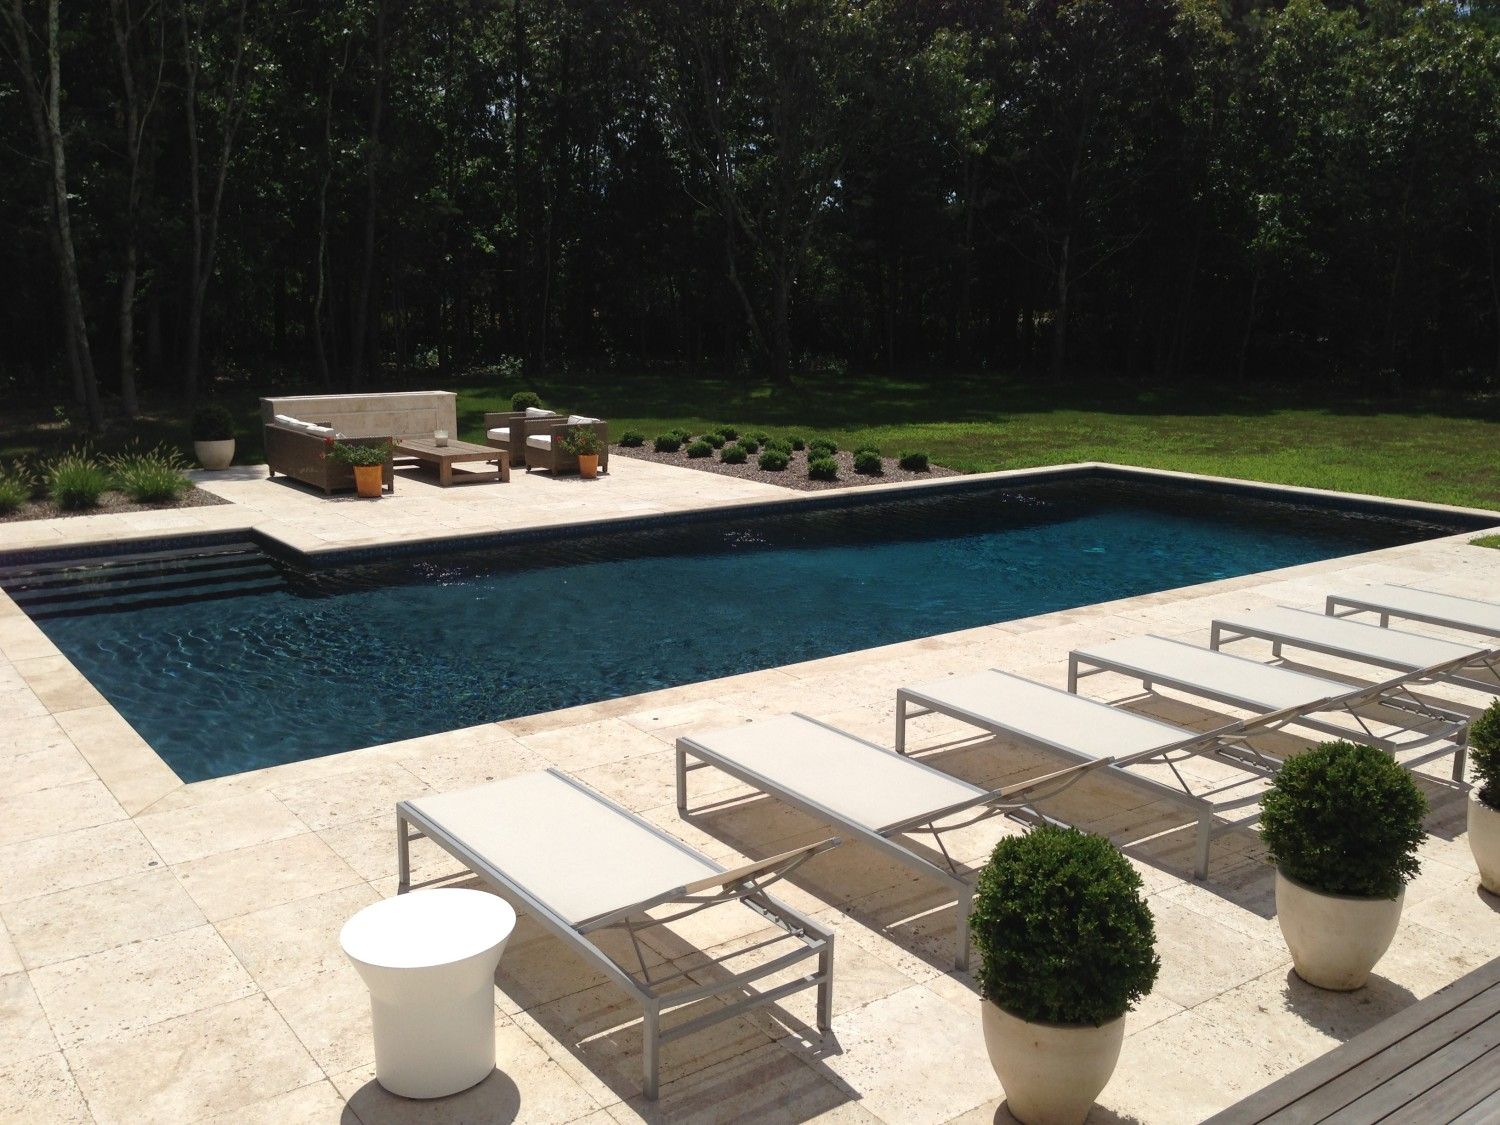 Saltwater gunite pool installation in suffolk county for Pool installation